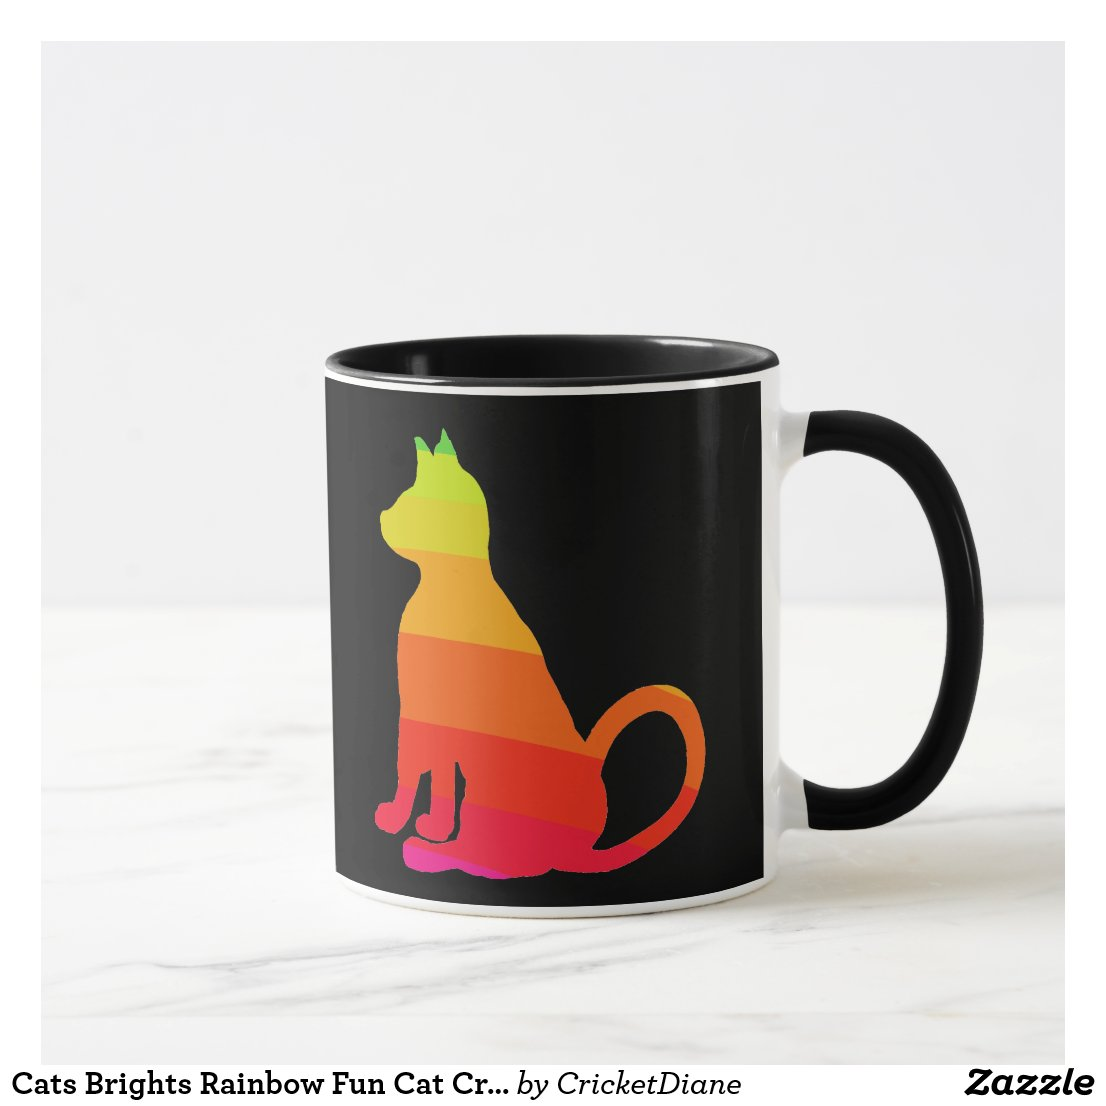 Cats Brights Rainbow Fun Cat CricketDiane Mug